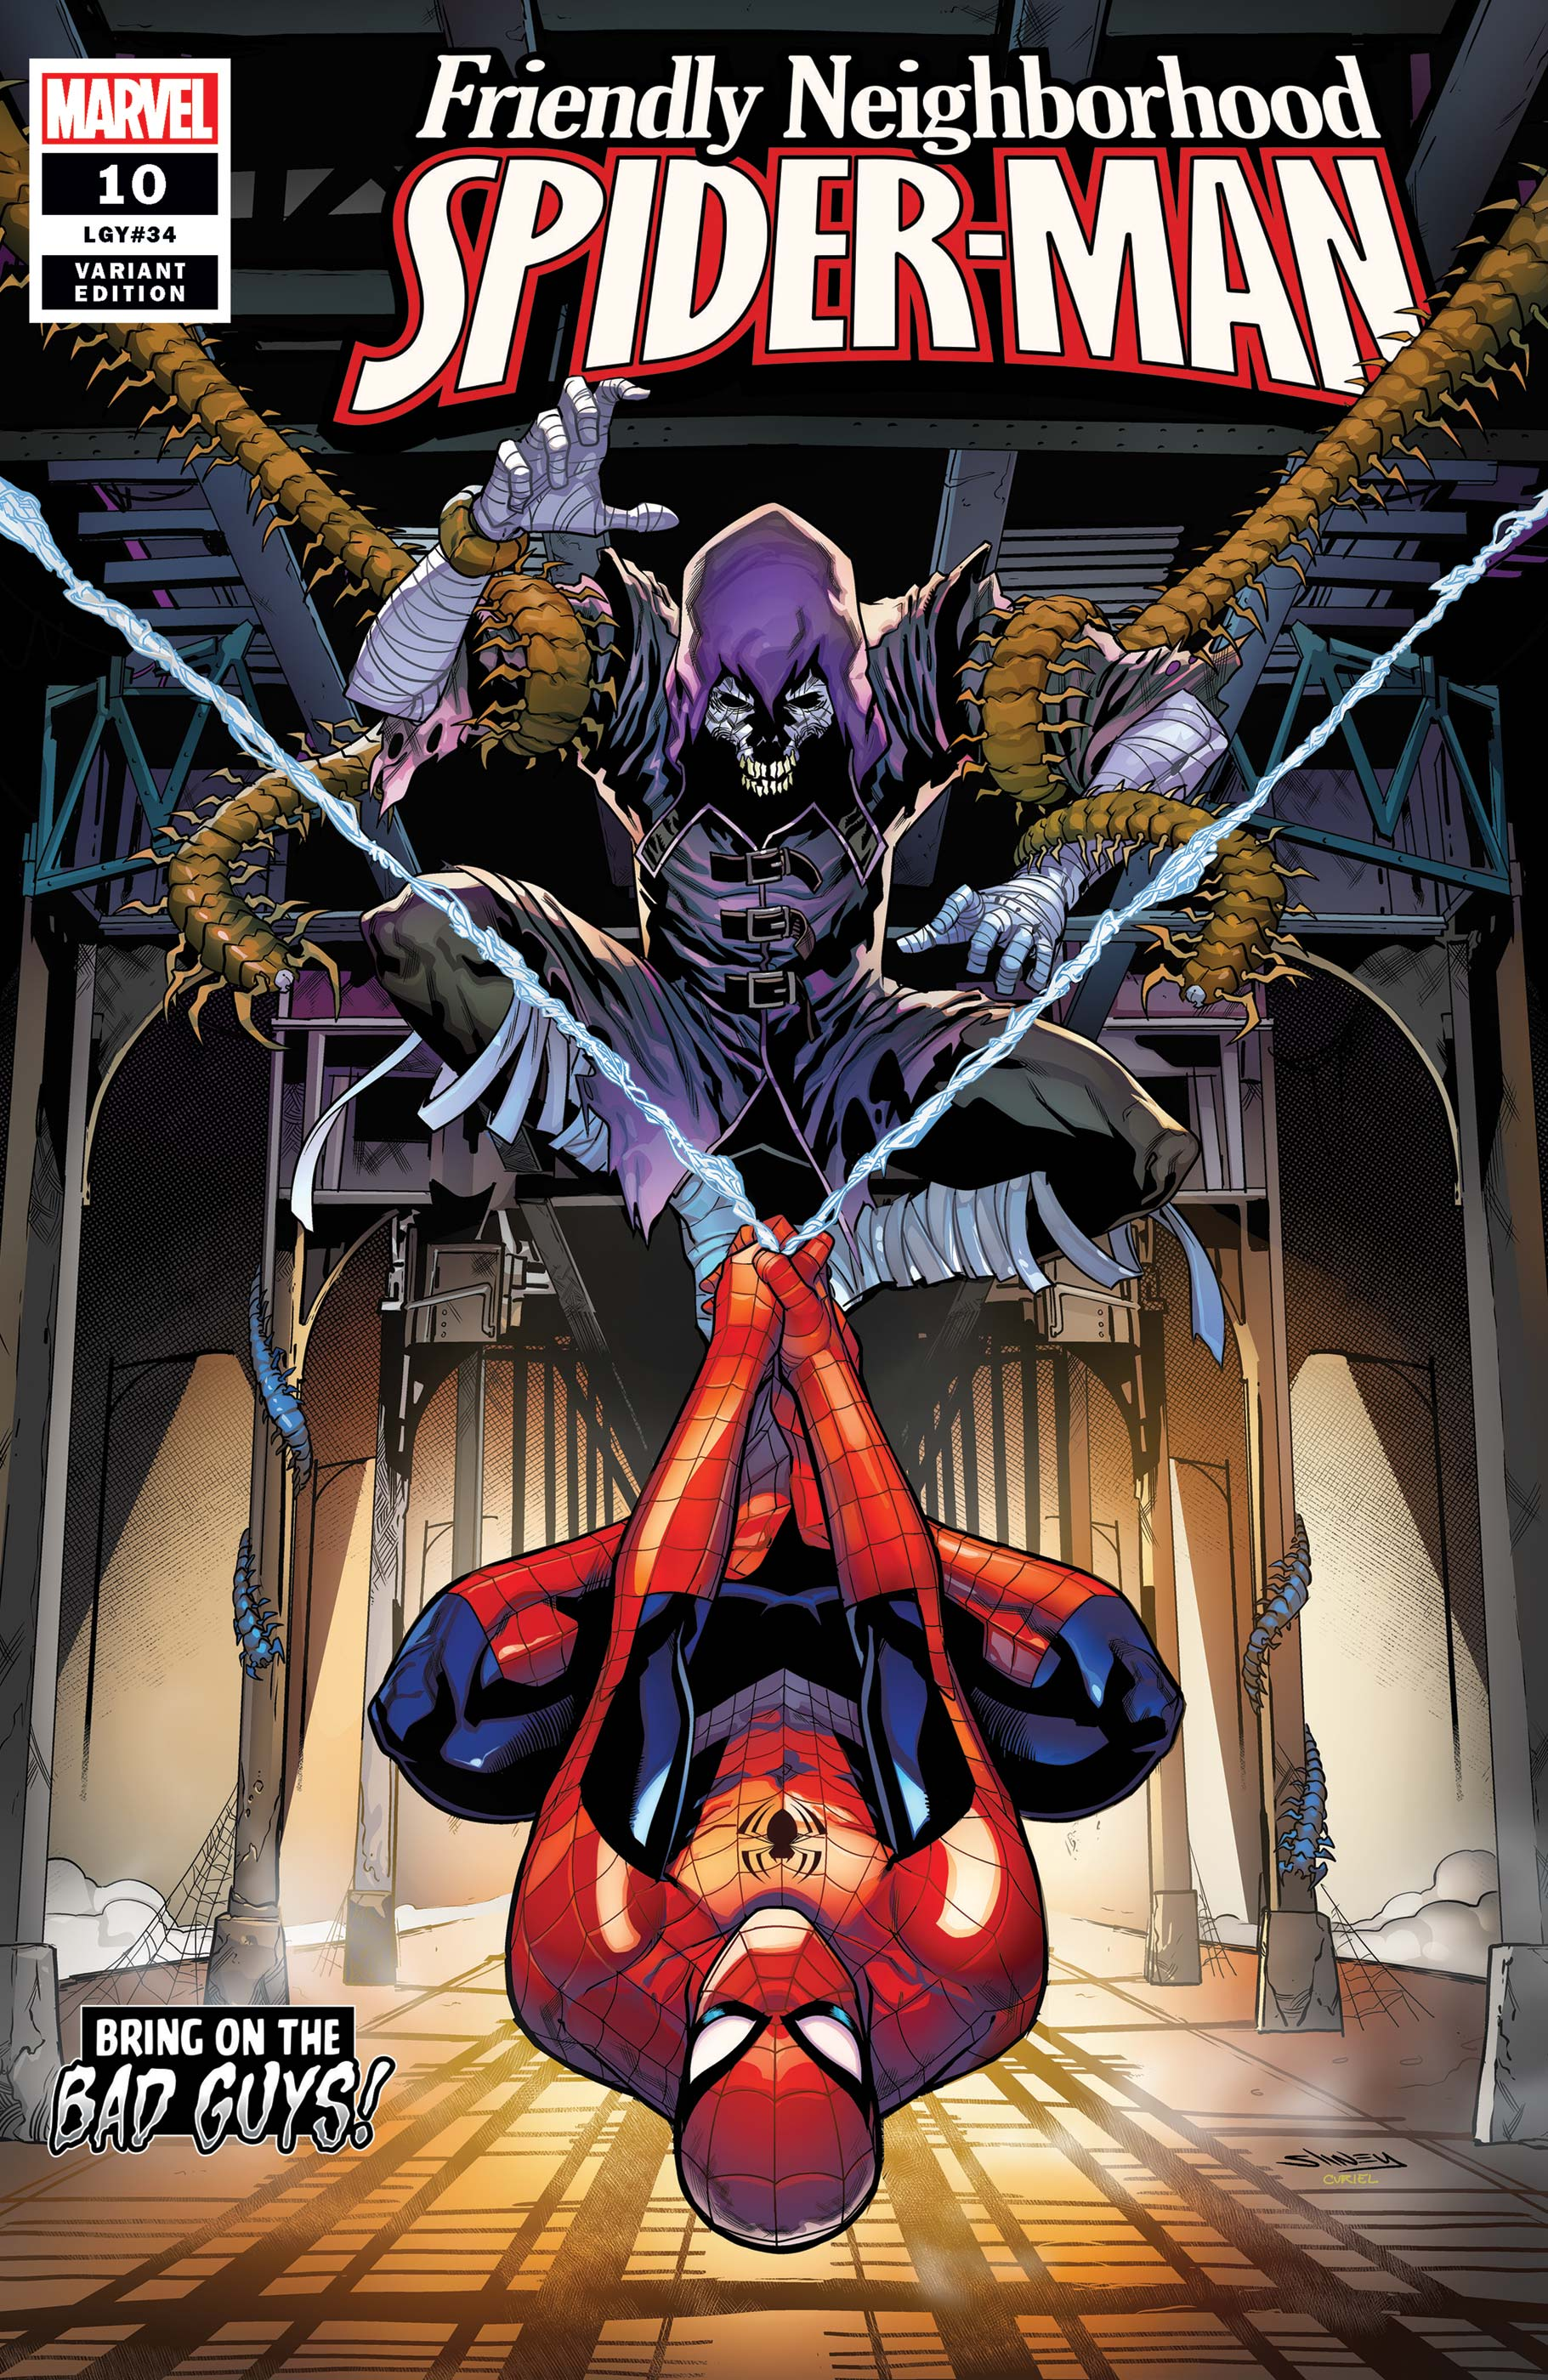 Friendly Neighborhood Spider-Man (2019) #10 (Variant)